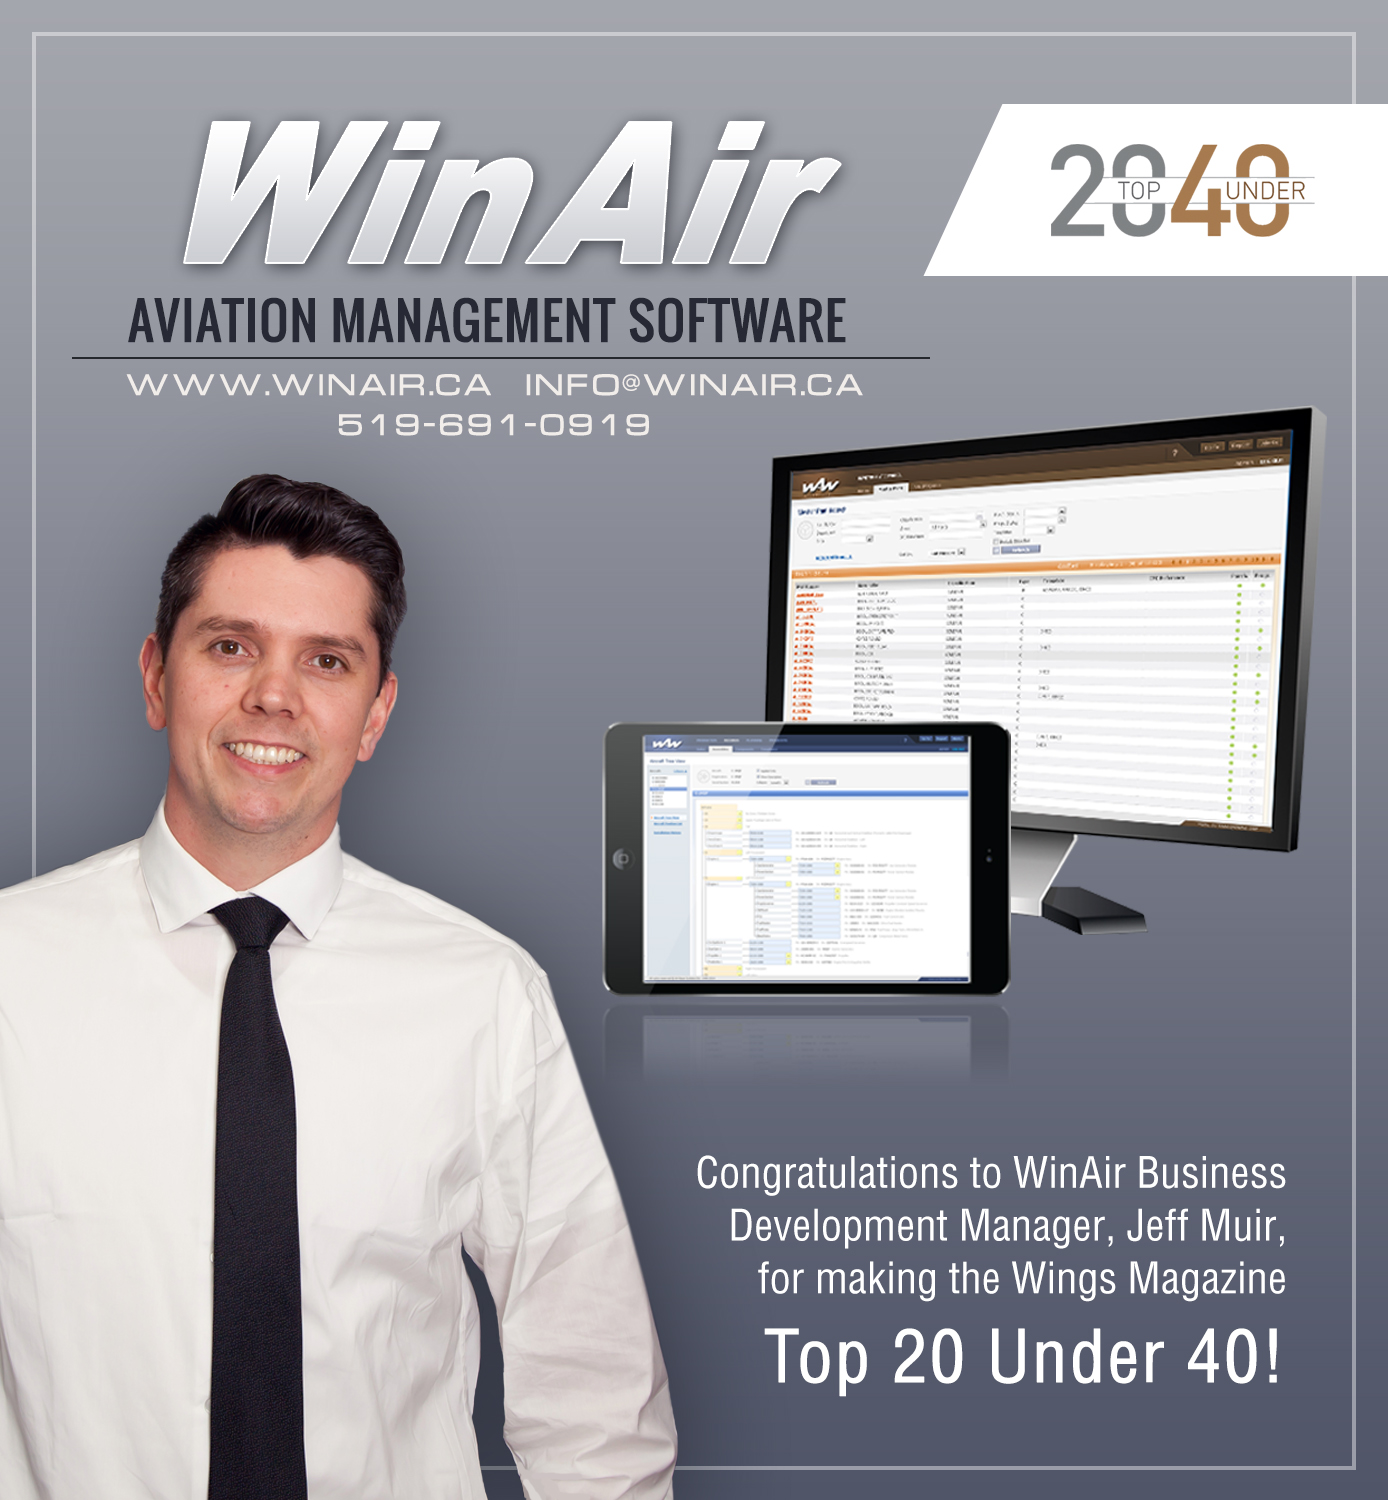 WinAir Business Development Manager Jeff Muir